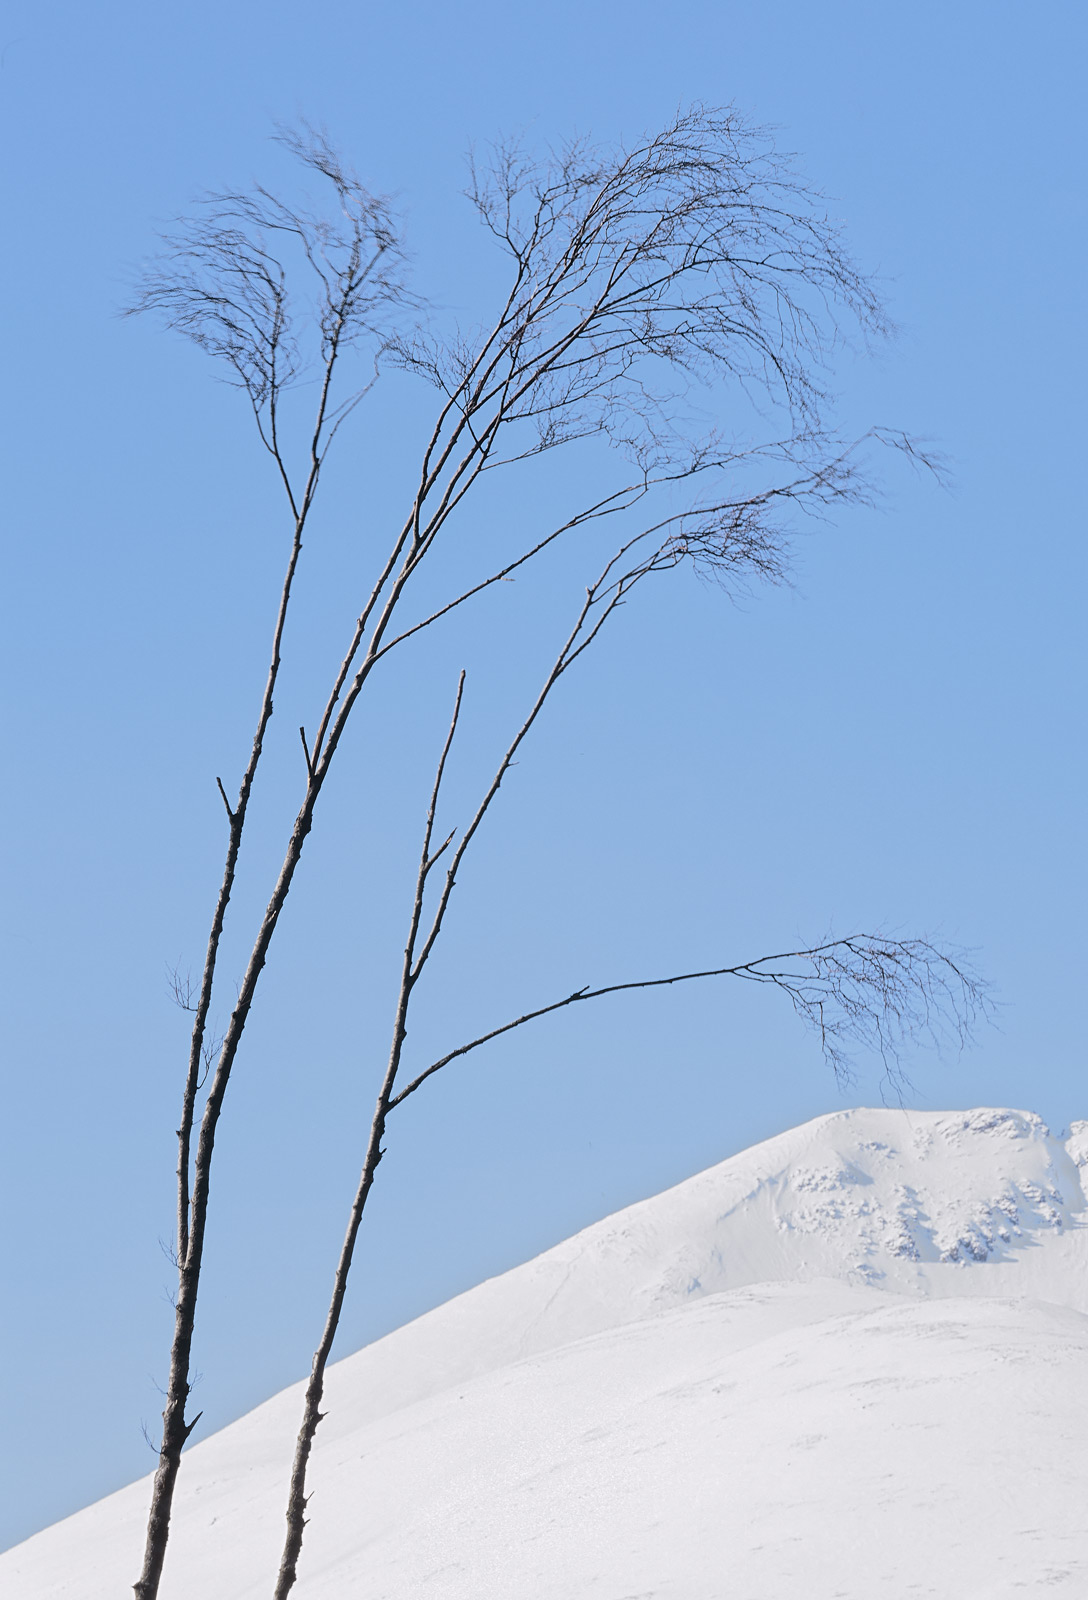 These amazingly delicate birch trees are in the shadow of a snow capped Beinn Eighe. They are very carefully positioned...